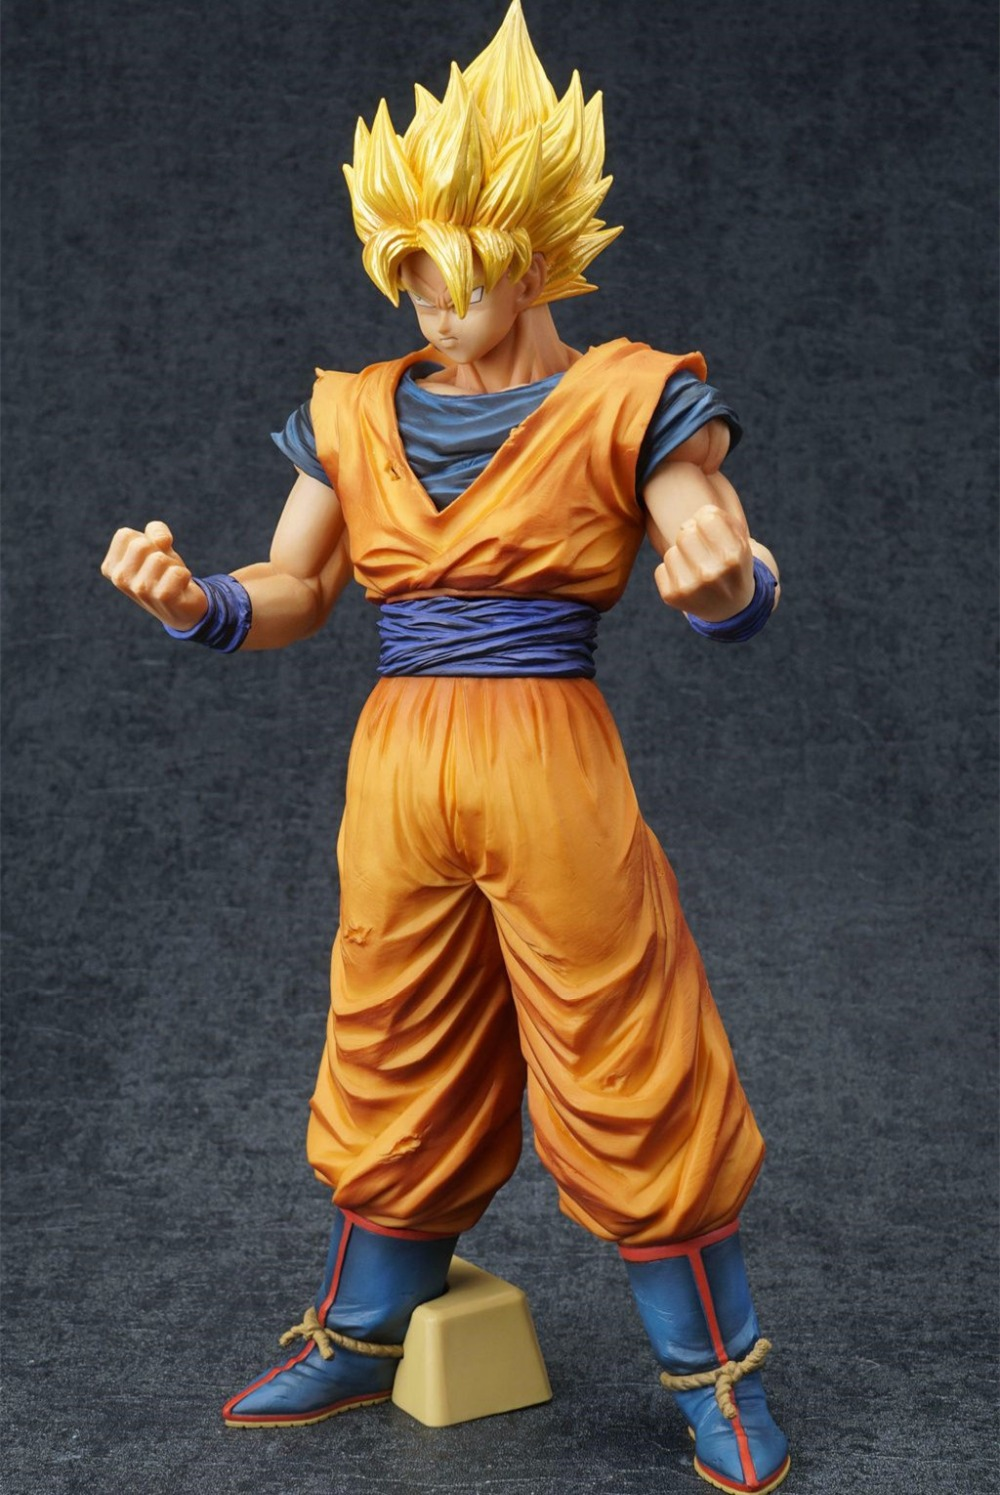 Anime Dragon Ball Z ROS Son Goku PVC Action Figure Collectible Model Kids Toys Doll 32CM Large Size Figure Toy dragon ball z super big size super son goku pvc action figure collectible model toy 28cm kt3936